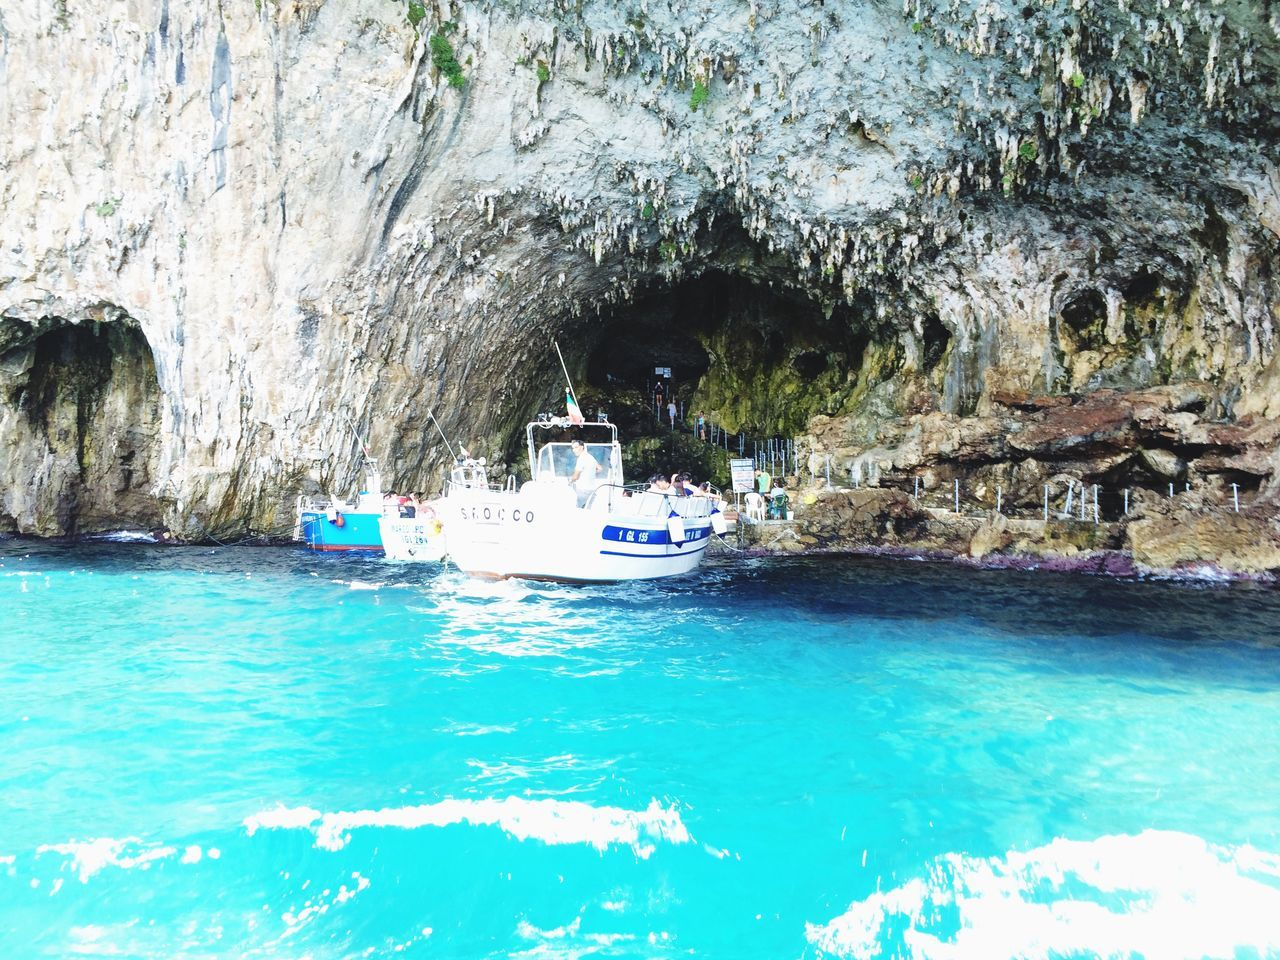 rock - object, rock formation, water, day, cave, transportation, nature, nautical vessel, real people, outdoors, beauty in nature